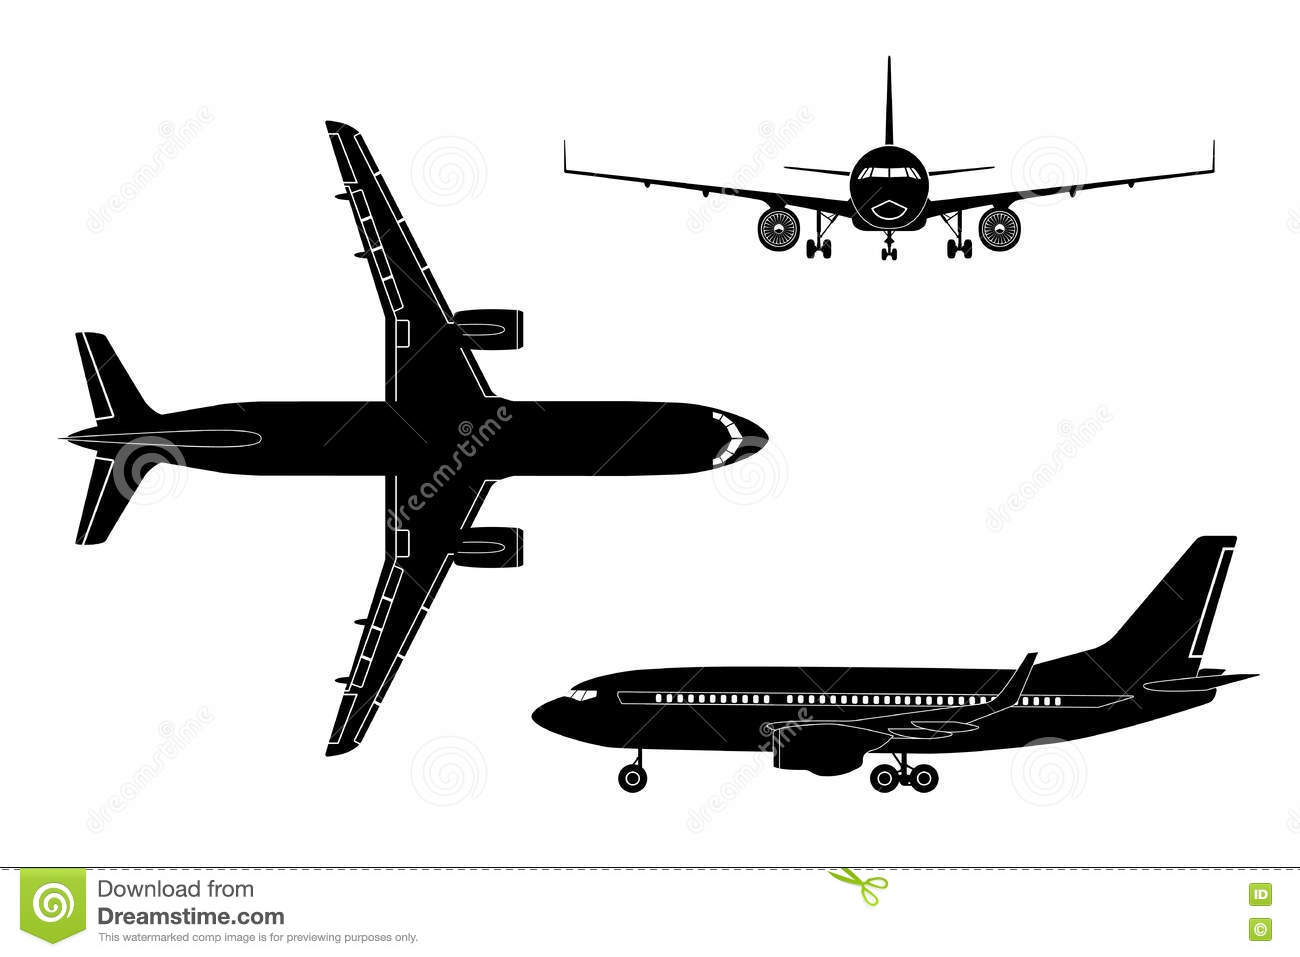 black airplane silhouette on a white background top view front